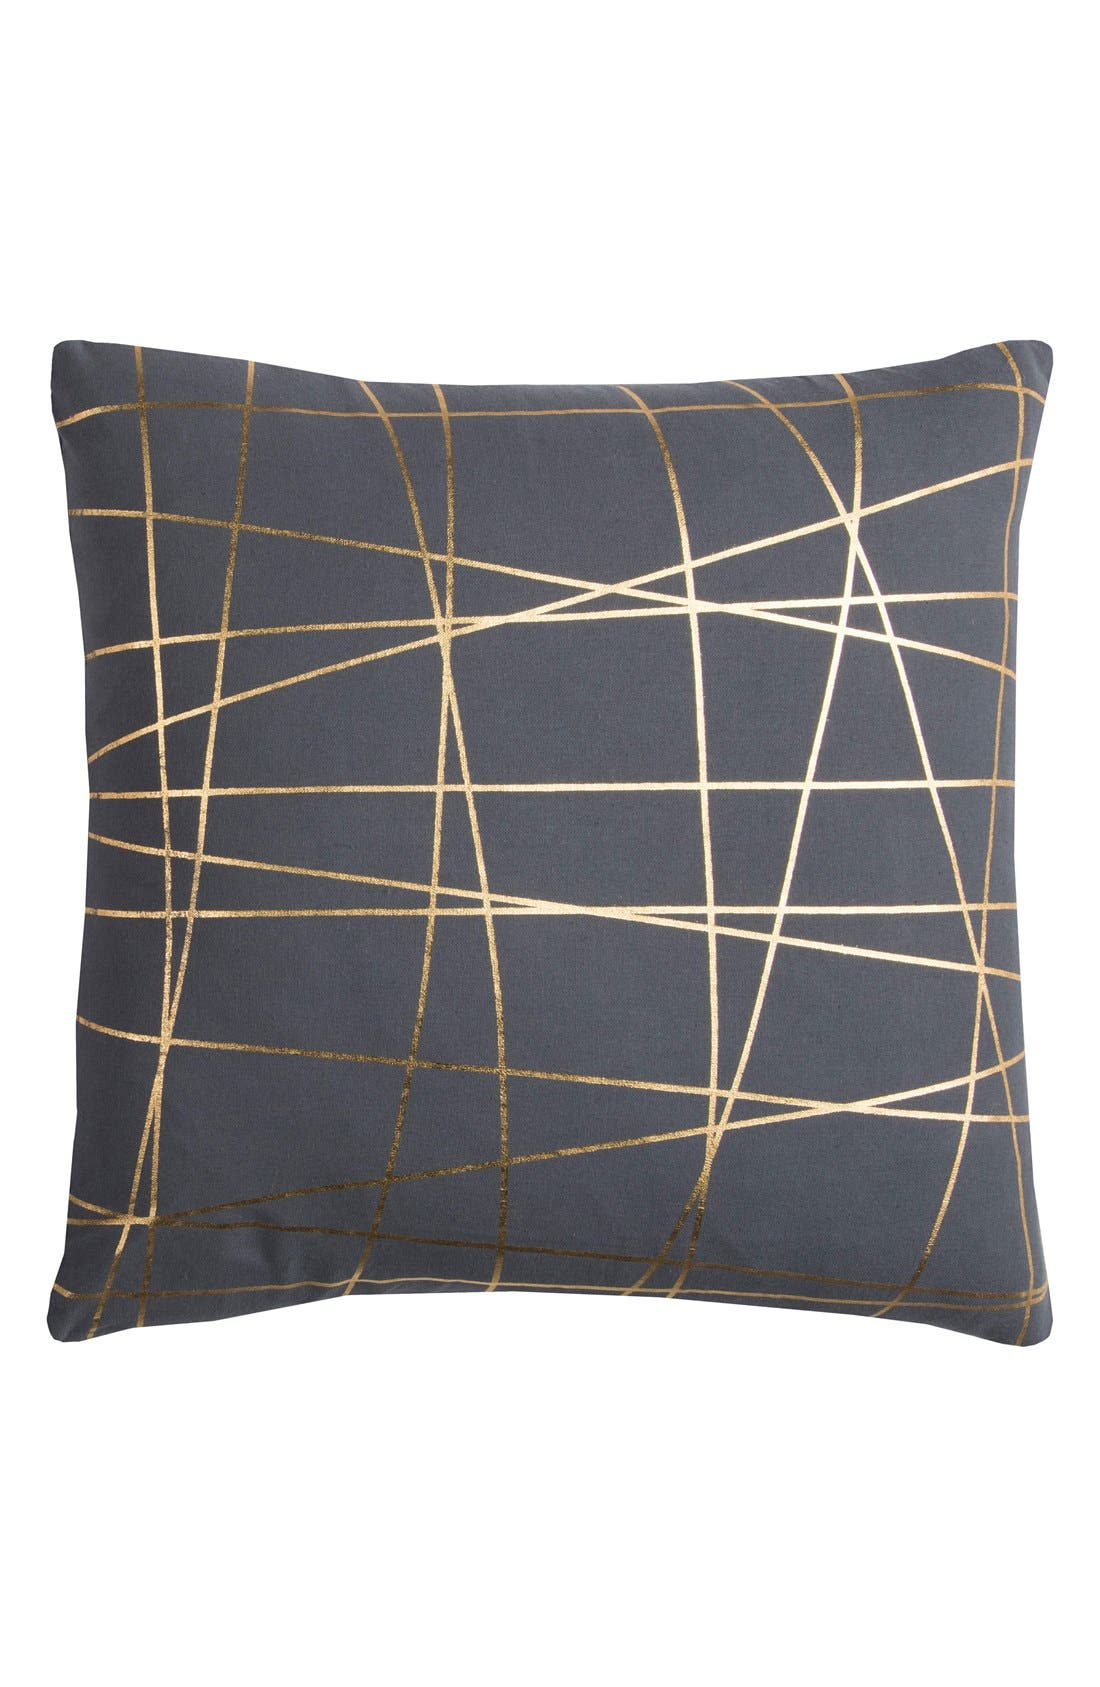 Metallic Lines Accent Pillow,                             Main thumbnail 1, color,                             Grey/ Gold